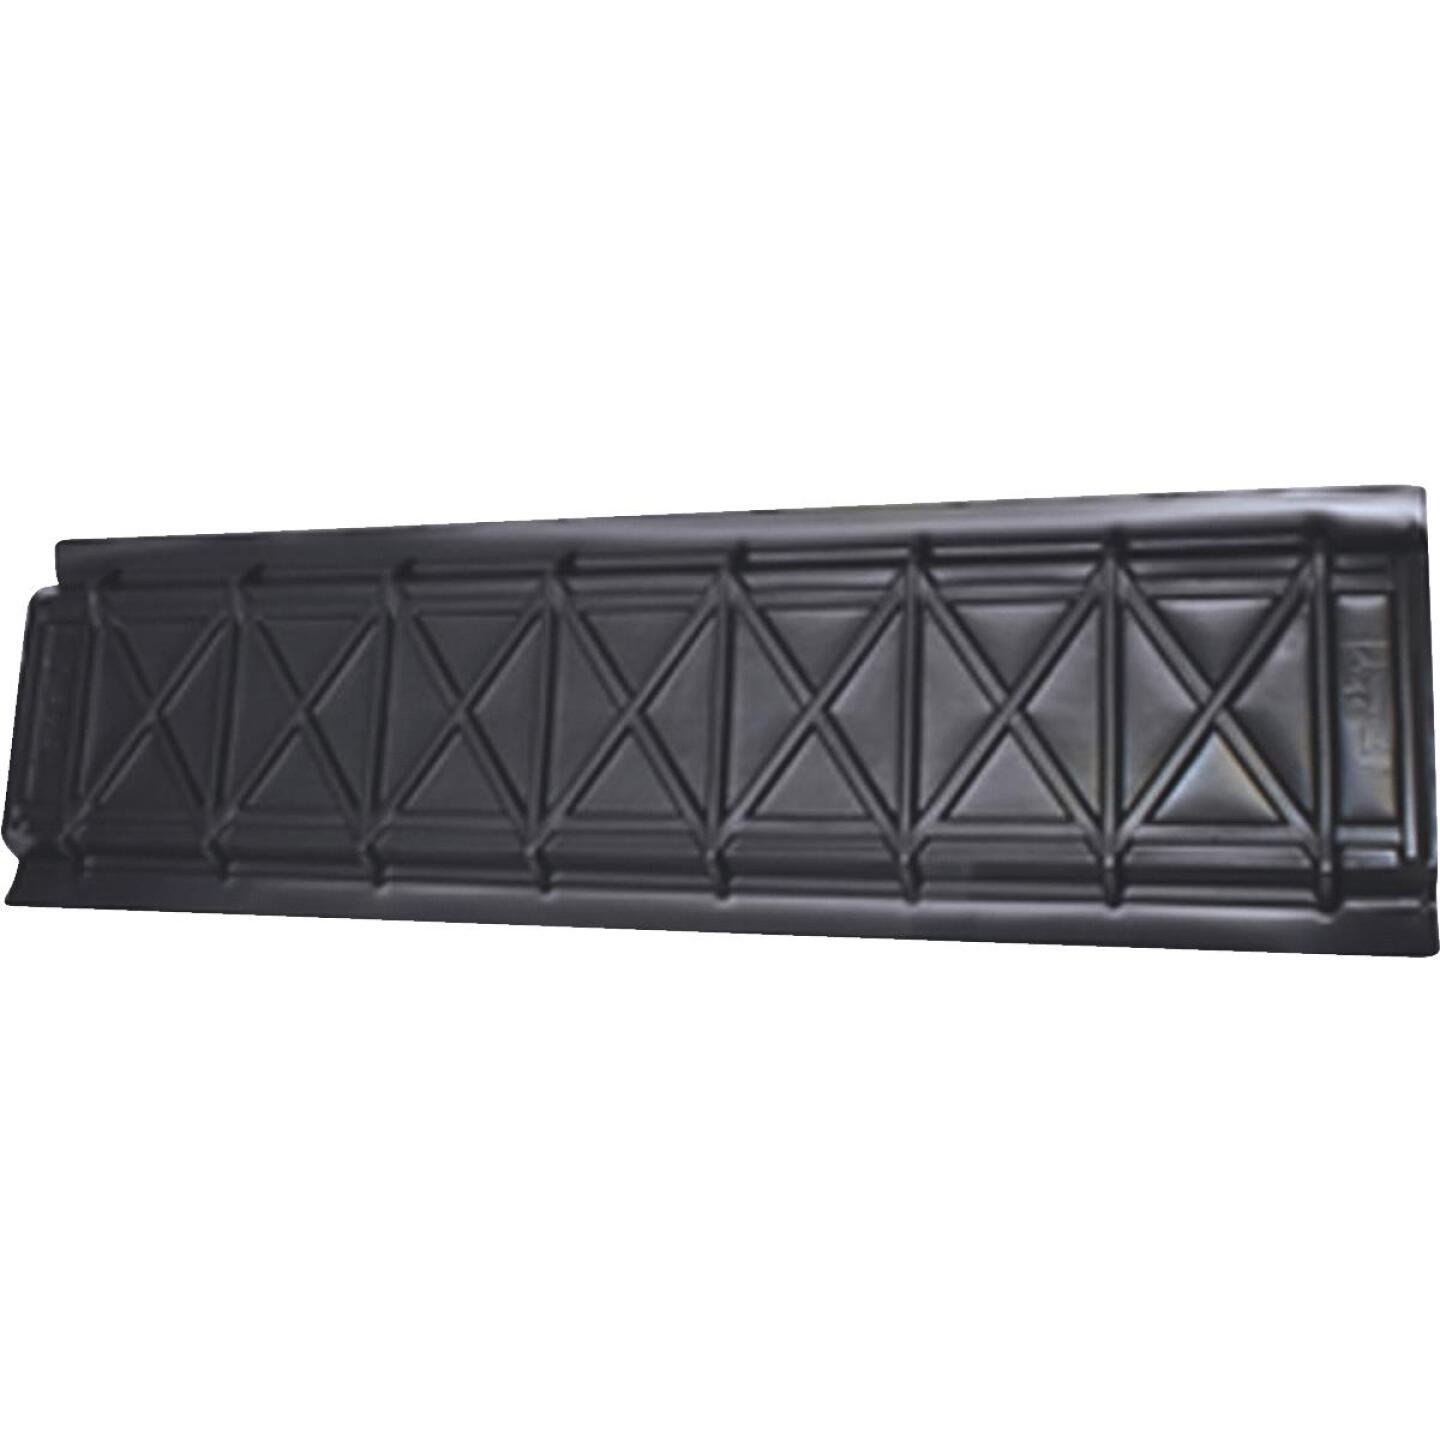 """ADO ProVent 14"""" x 48"""" High Impact Polystyrene ProVent Attic Rafter Vent Image 1"""